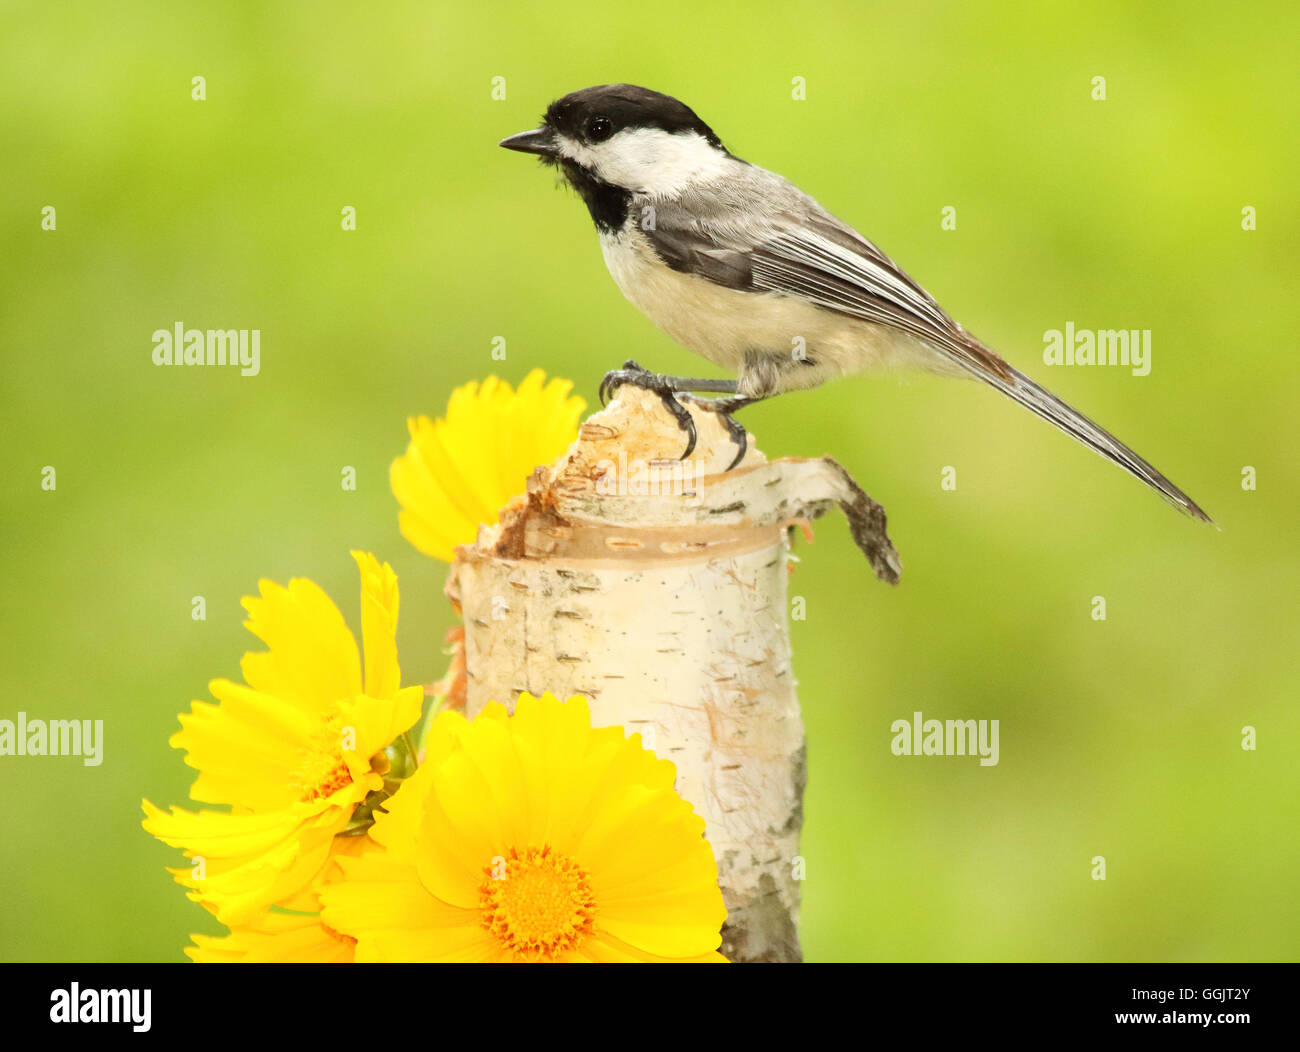 A Black-capped Chickadee atop a perch. - Stock Image